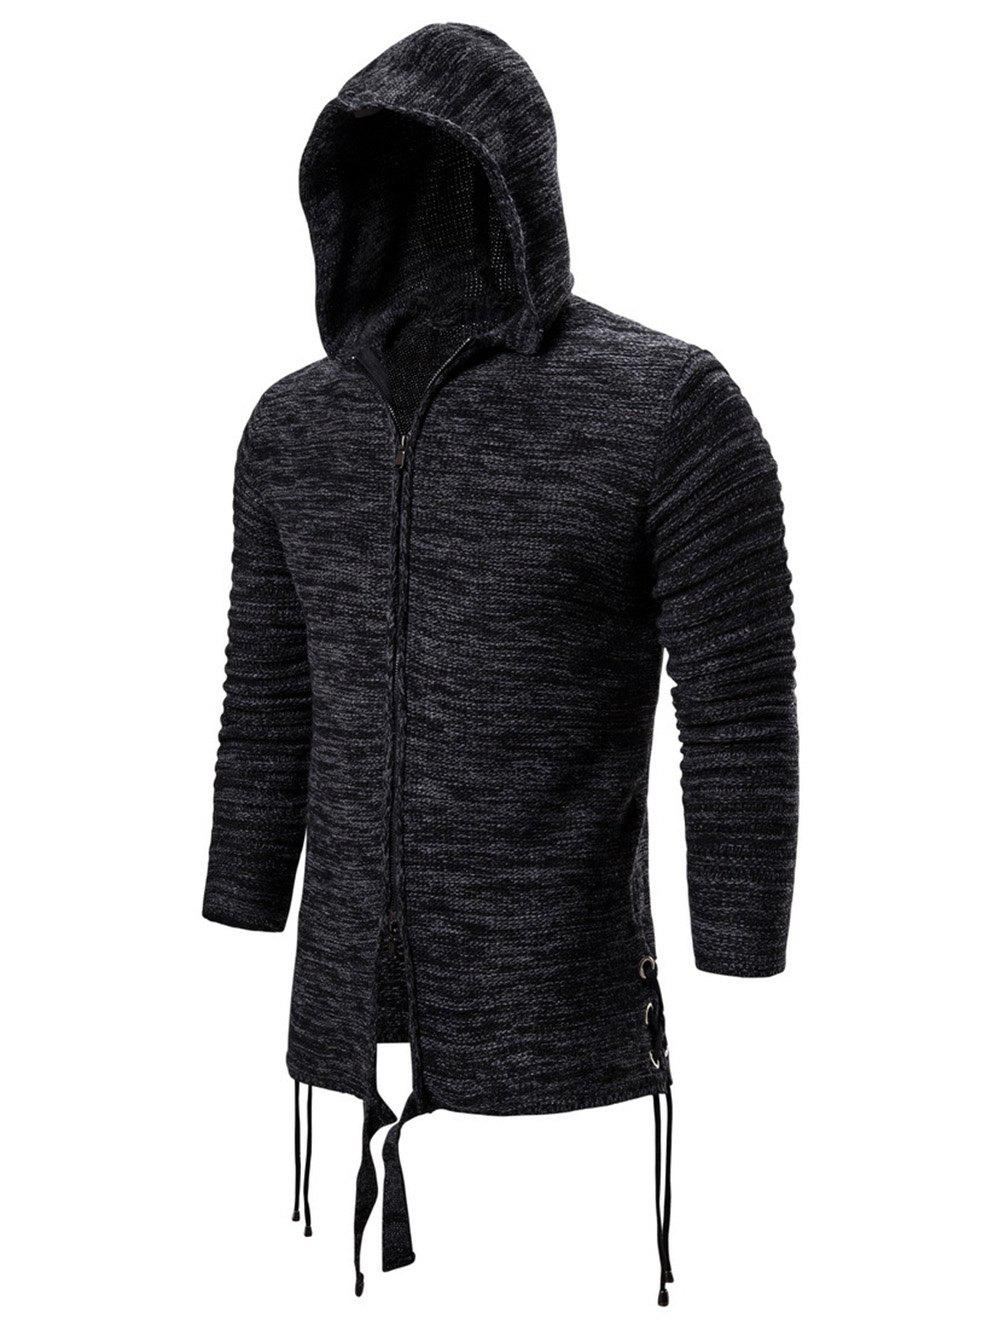 Unique Solid Color Zip Up Hooded Cardigan